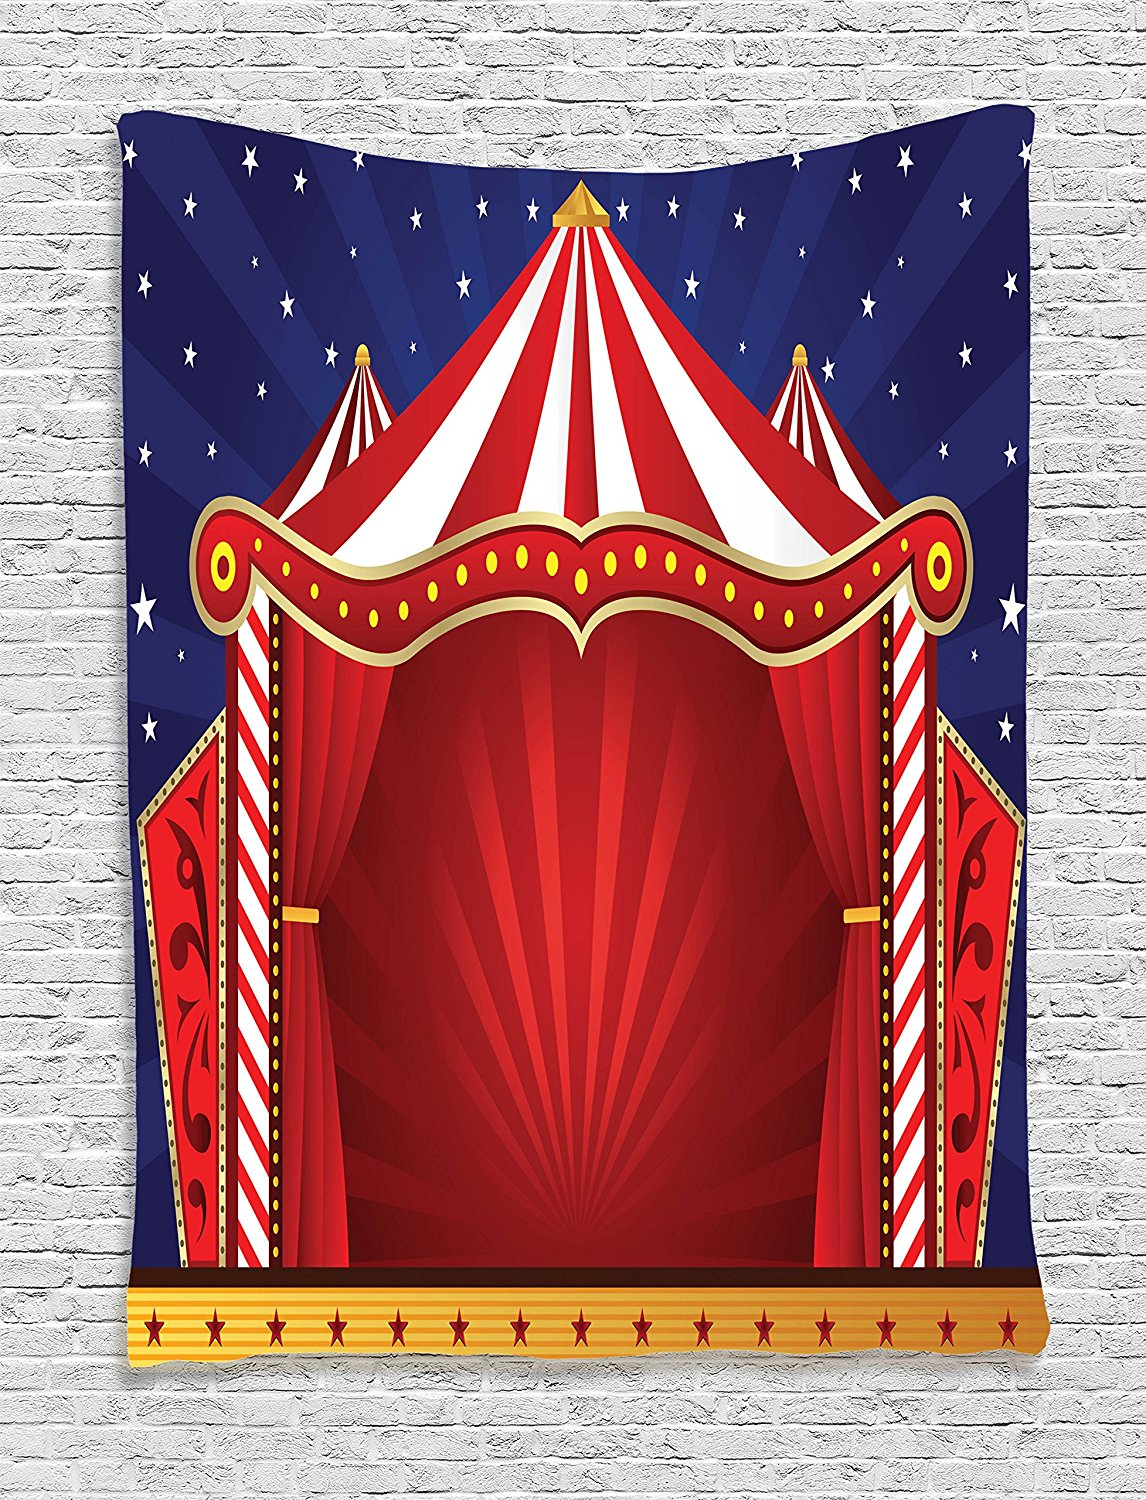 kids tapestry circus decor by tent stage backdrop print performing activity playroom decorations theater themed wall hanging art for bedroom living